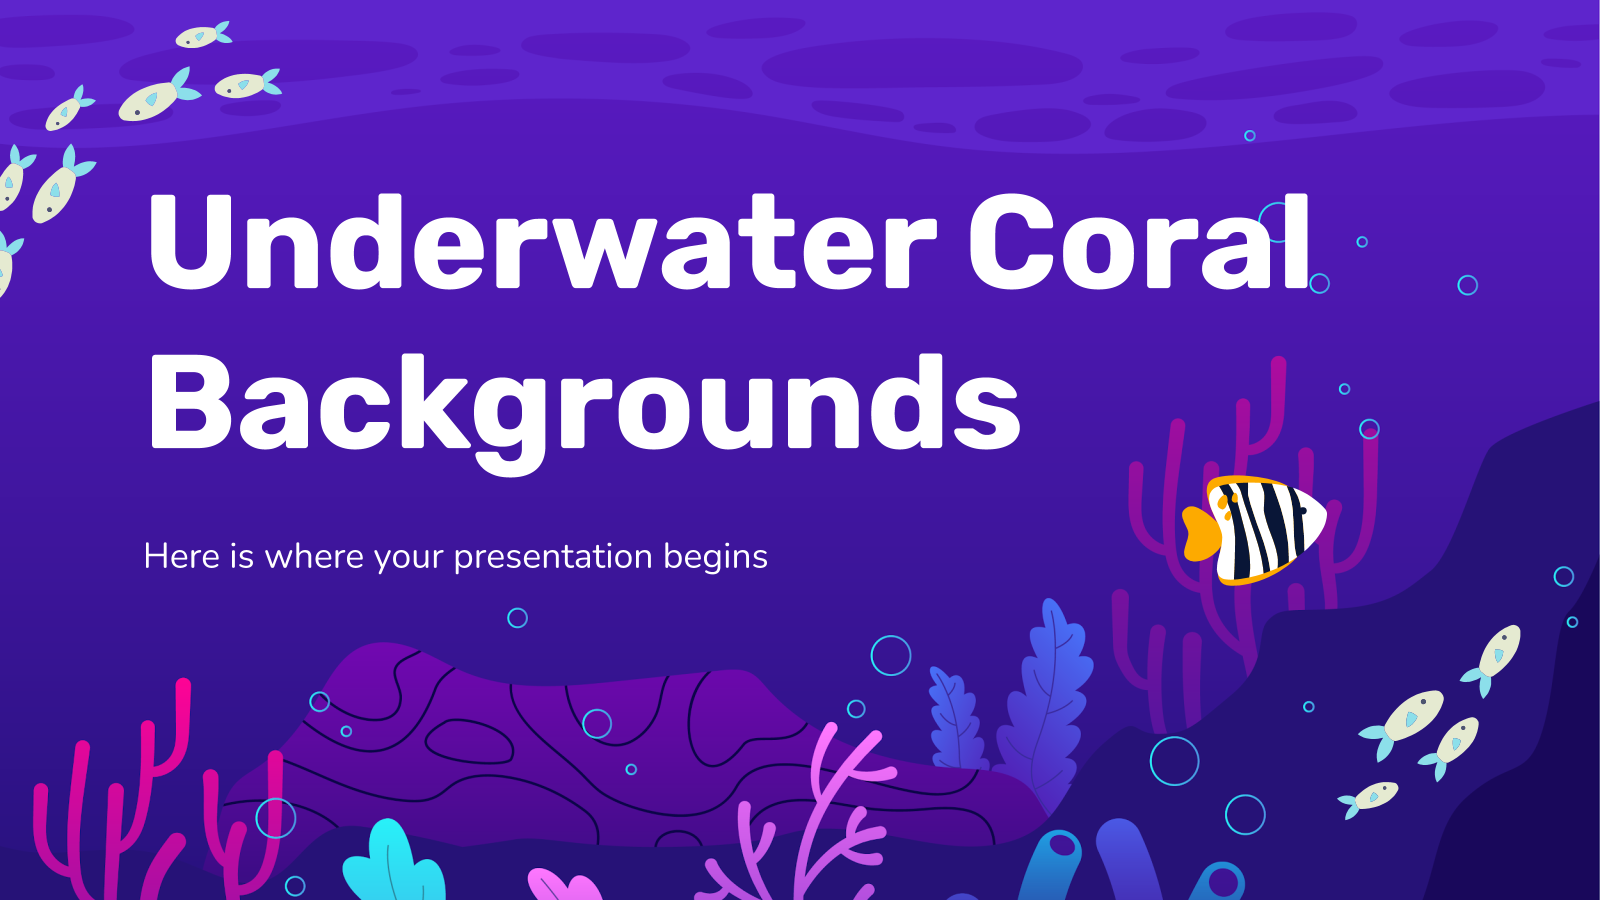 Underwater Coral Backgrounds presentation template